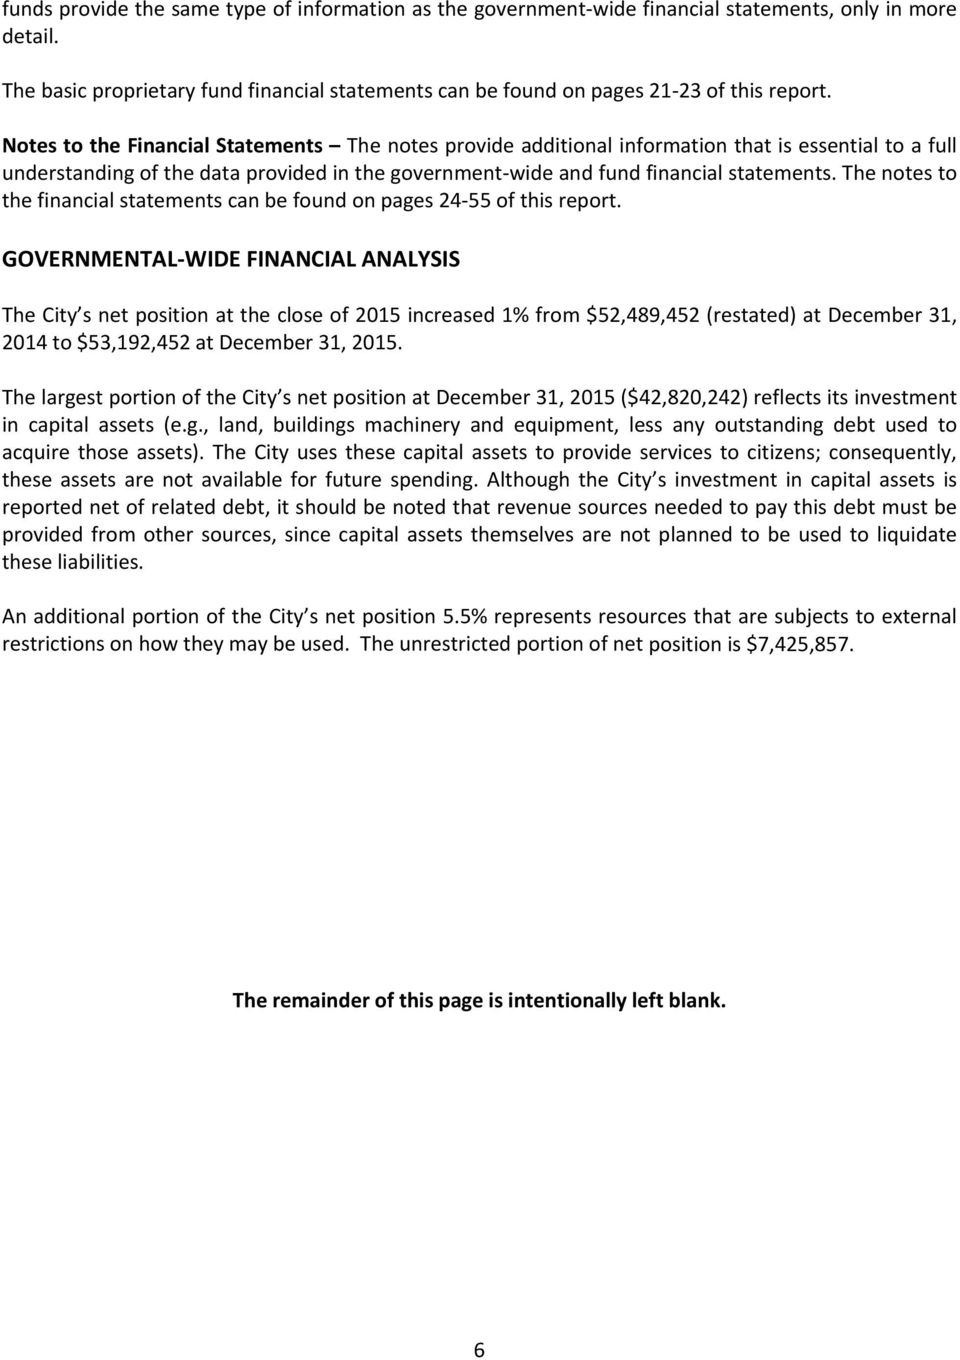 The notes to the financial statements can be found on pages 24 55 of this report.